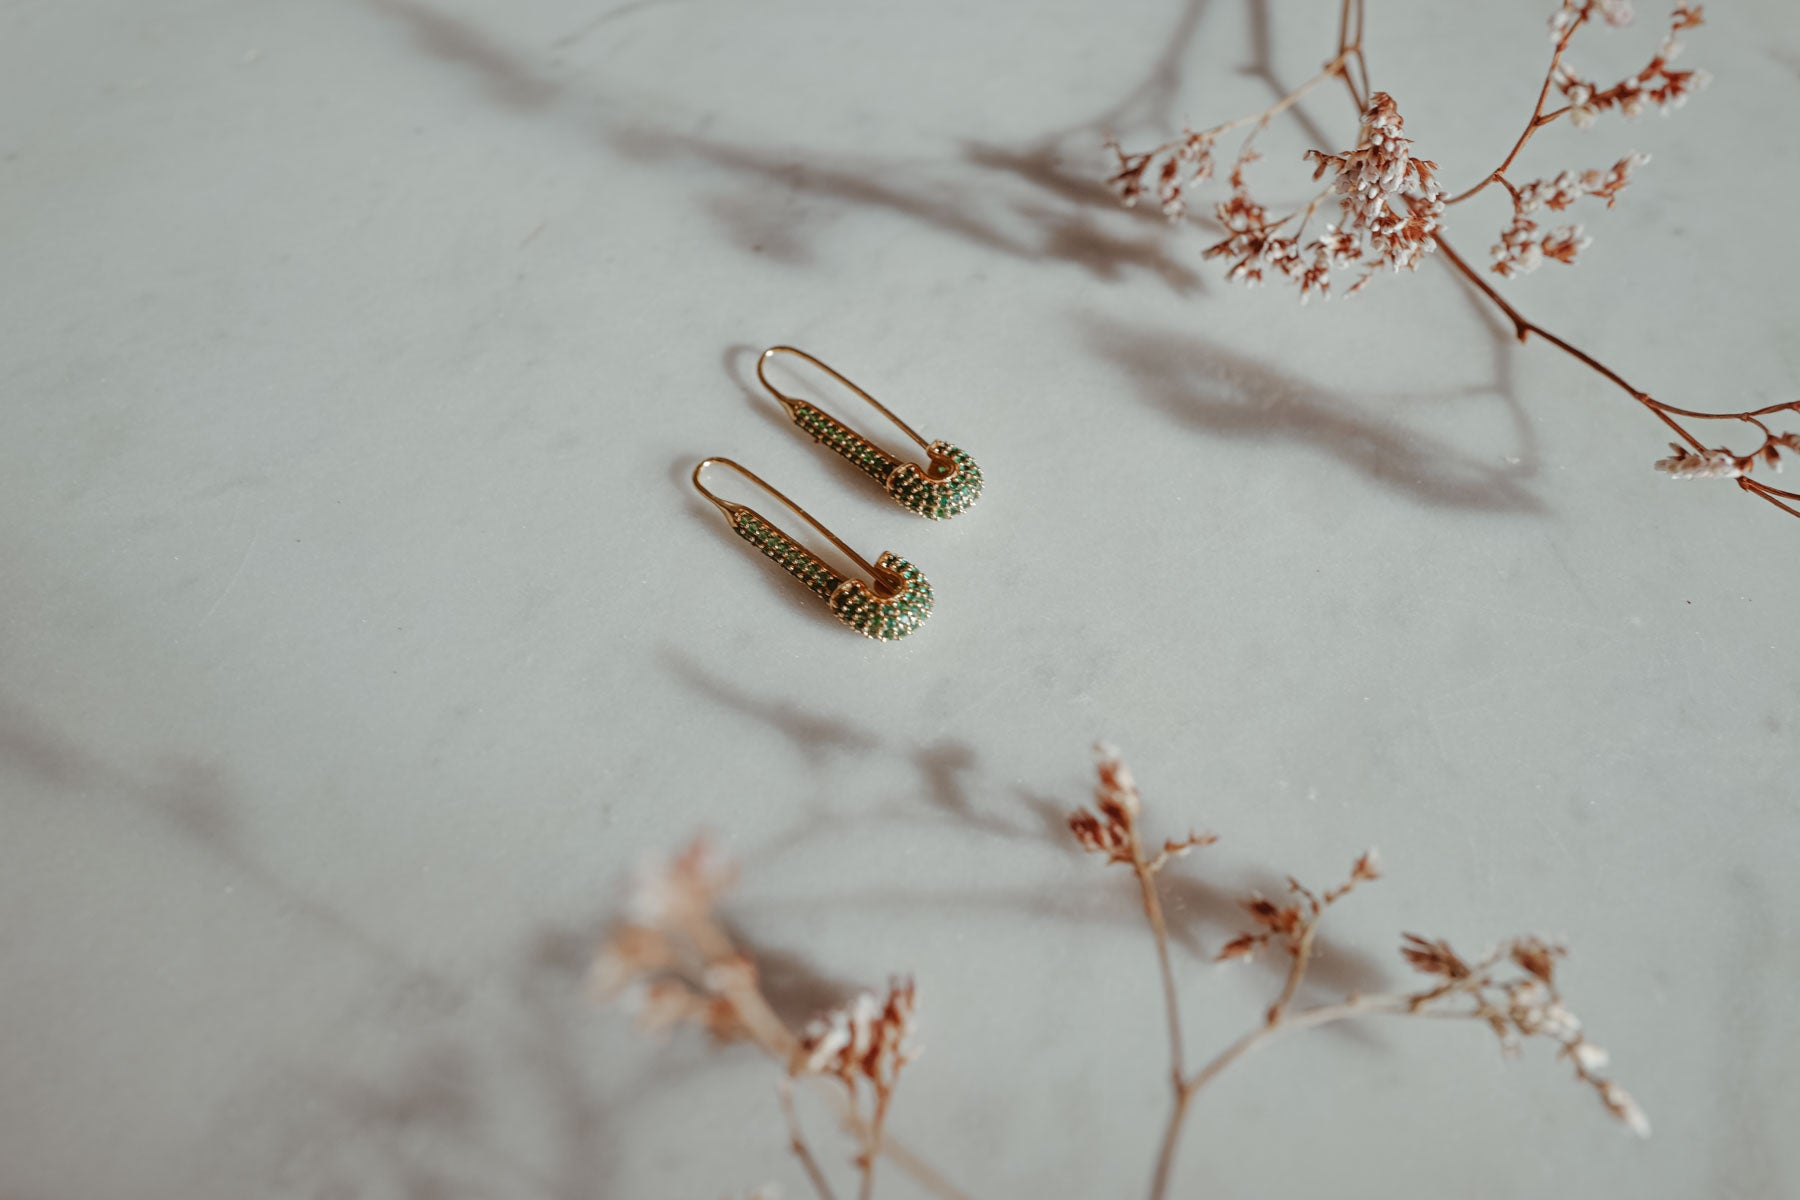 Safety Pin 18k Gold Earrings